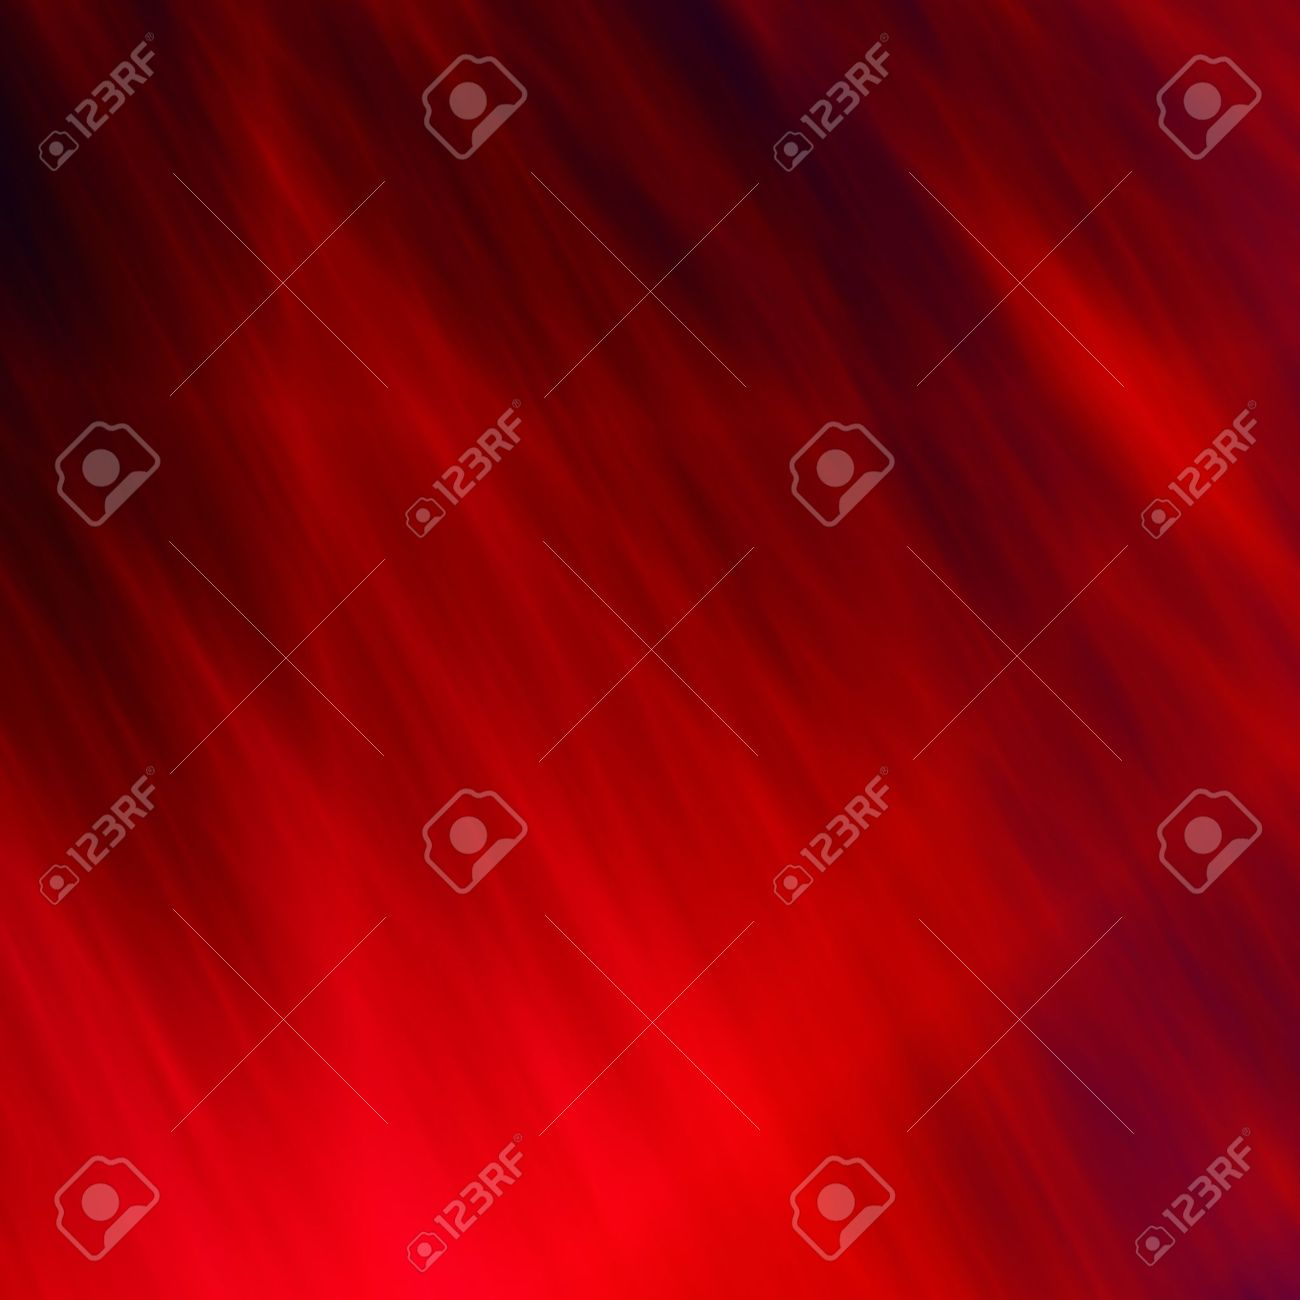 Red Sexy Abstract Web Wallpaper Background